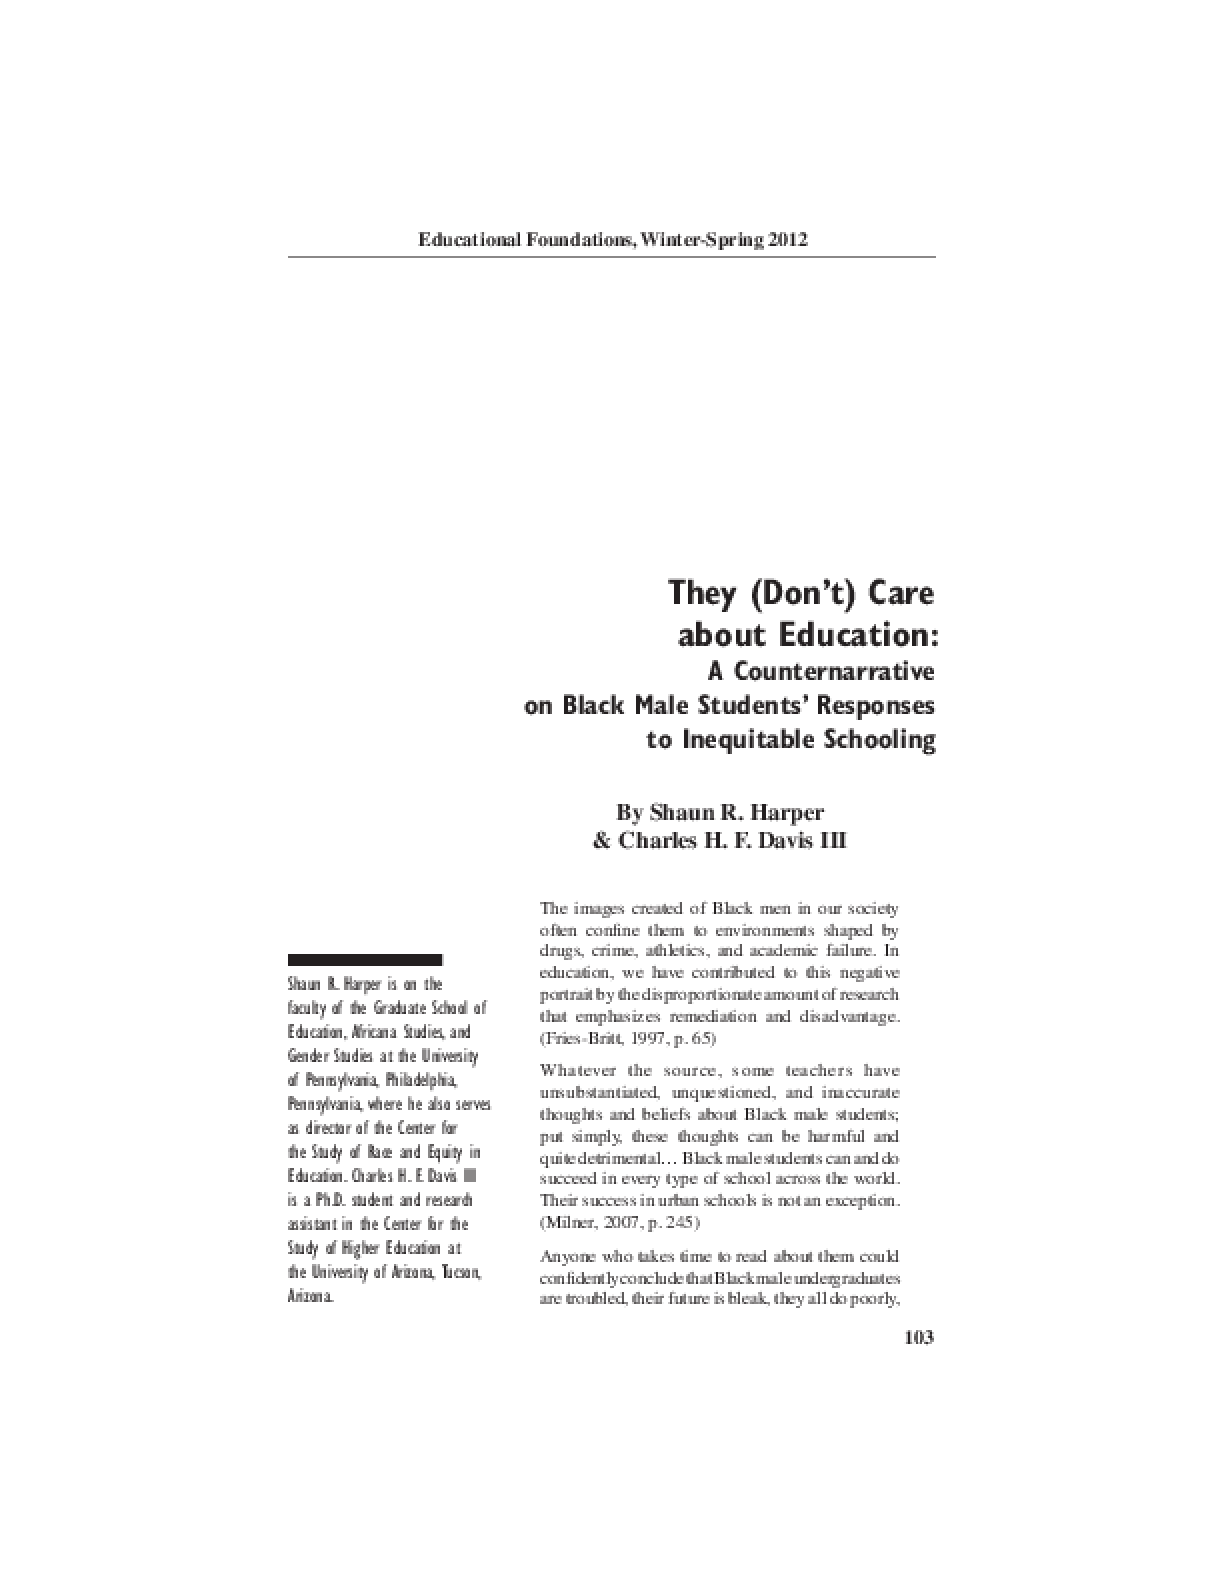 They (Don't) Care About Education: A Counternarrative on Black Male Students' Responses to Inequitable Schooling